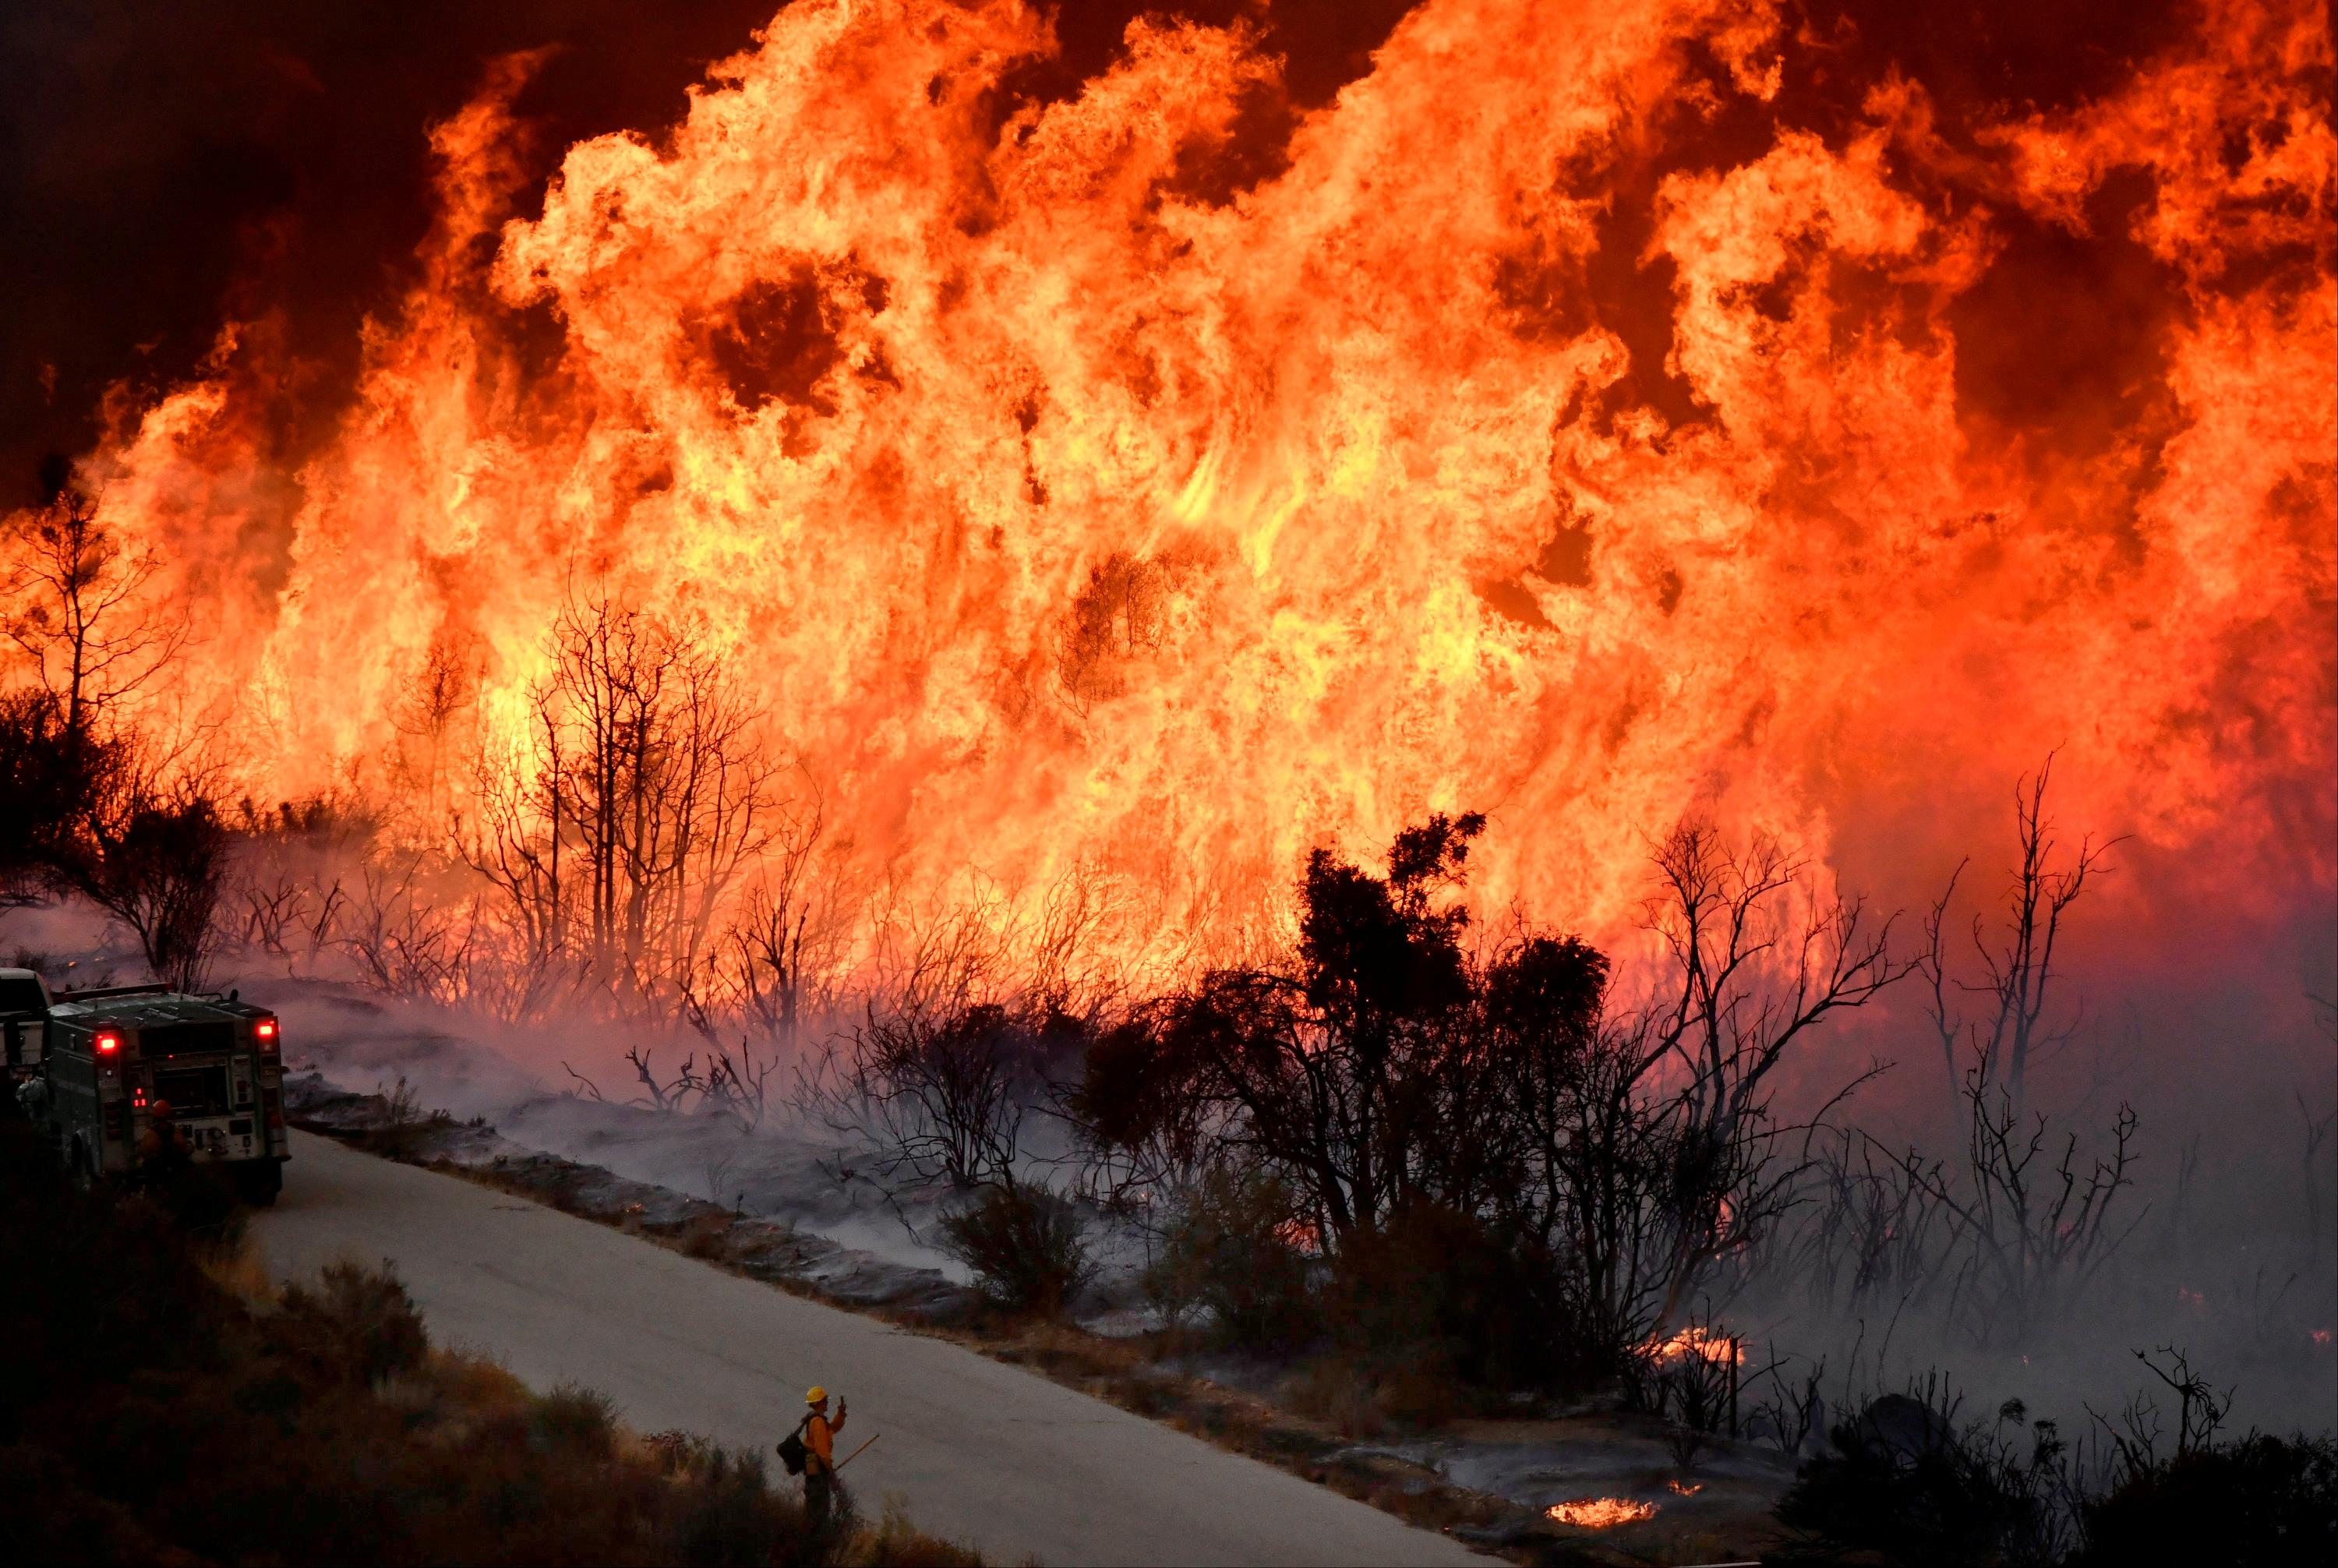 Goleta Santa Barbara Fires Latest: Wind-Driven Blaze Destroys Homes and Forces Evacuations